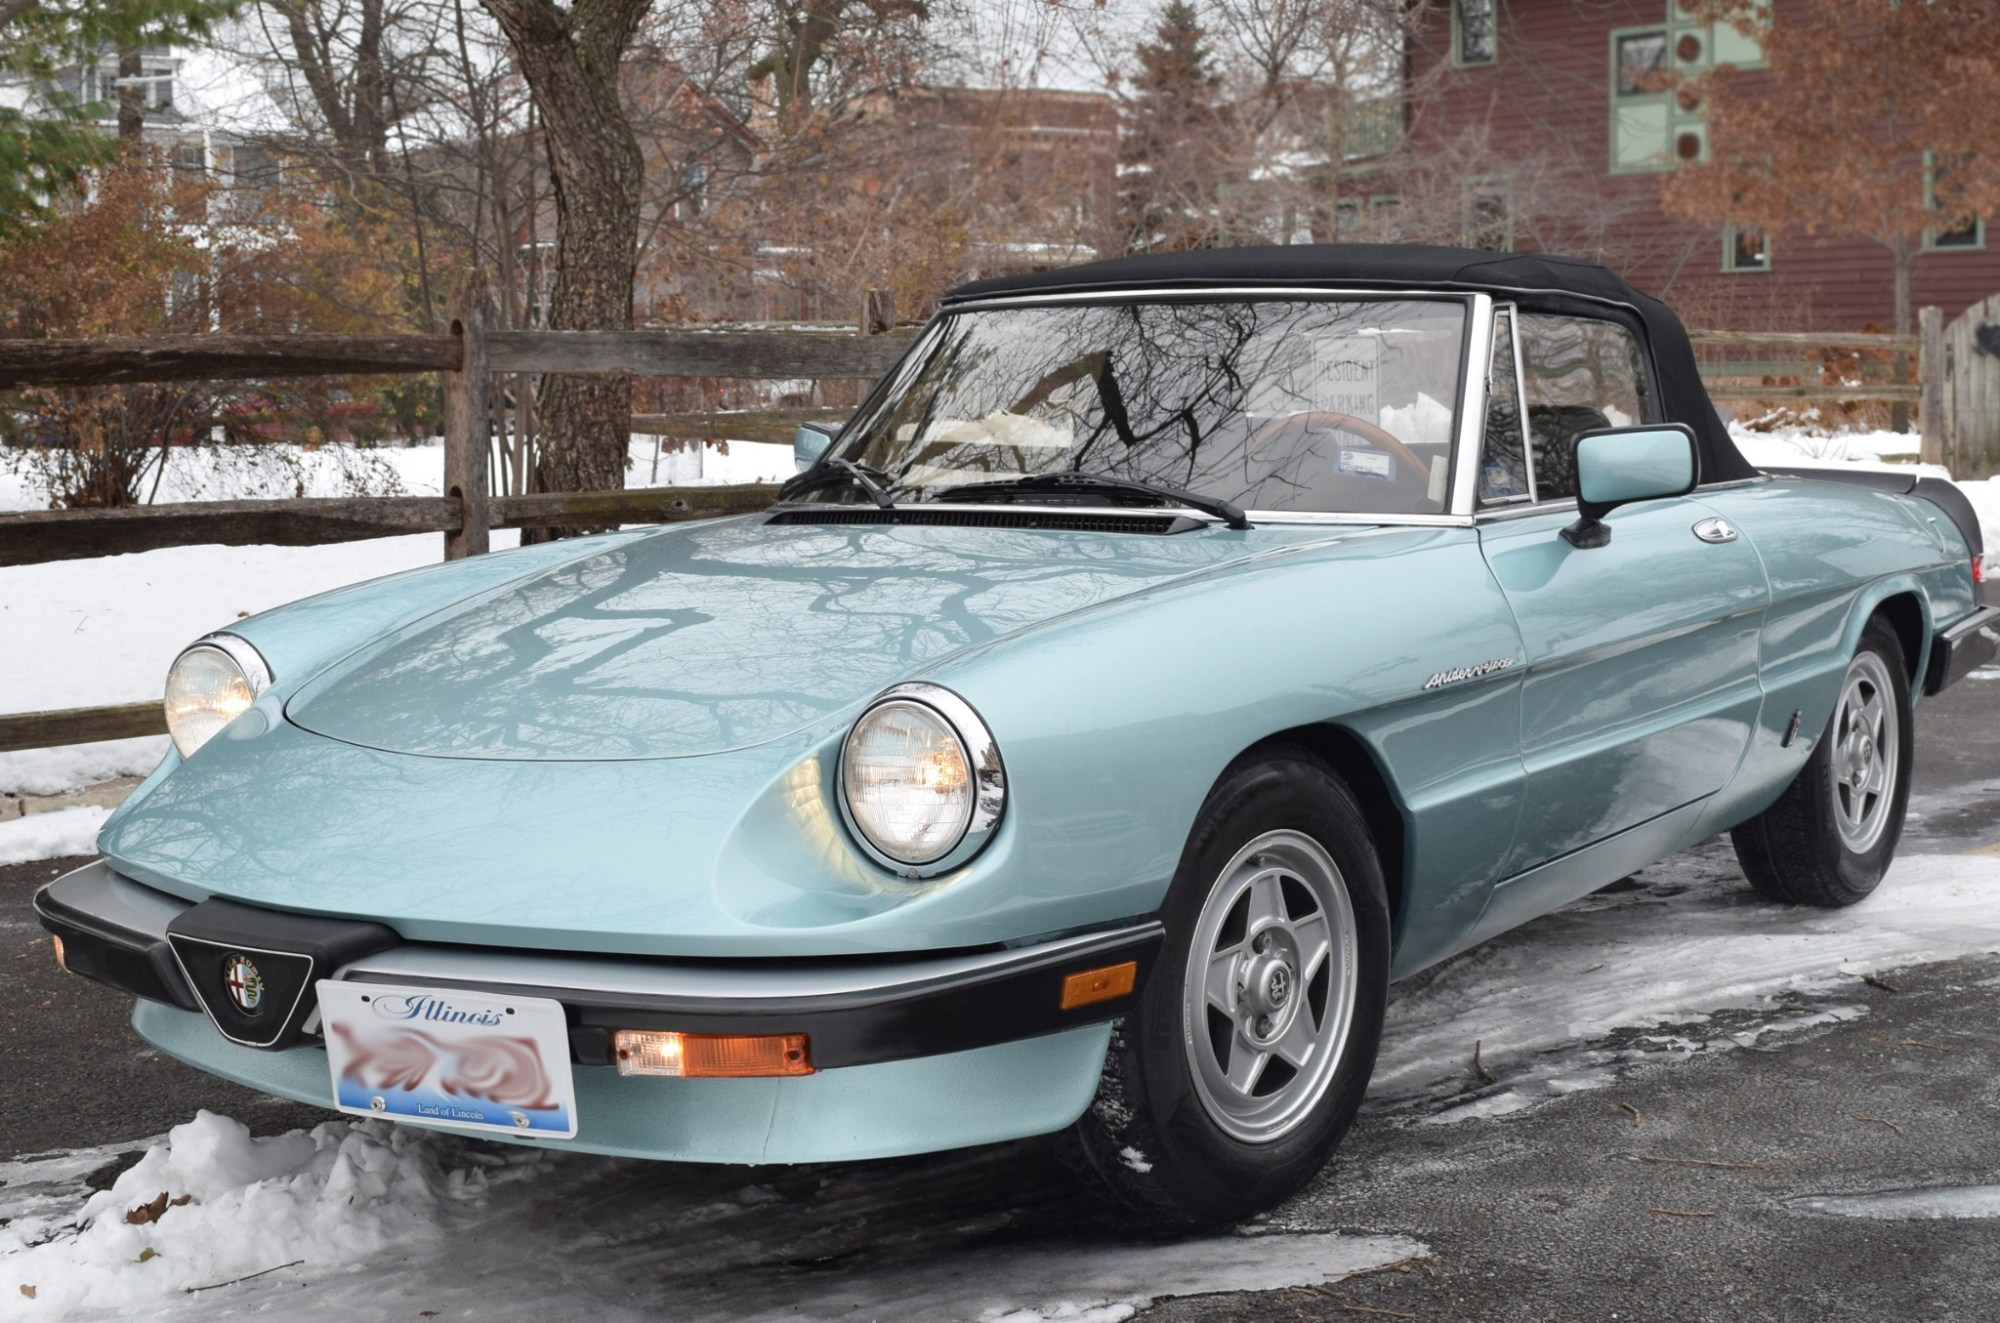 hight resolution of 1984 alfa romeo spider veloce for sale on bat auctions closed on january 20 2017 lot 3 043 bring a trailer